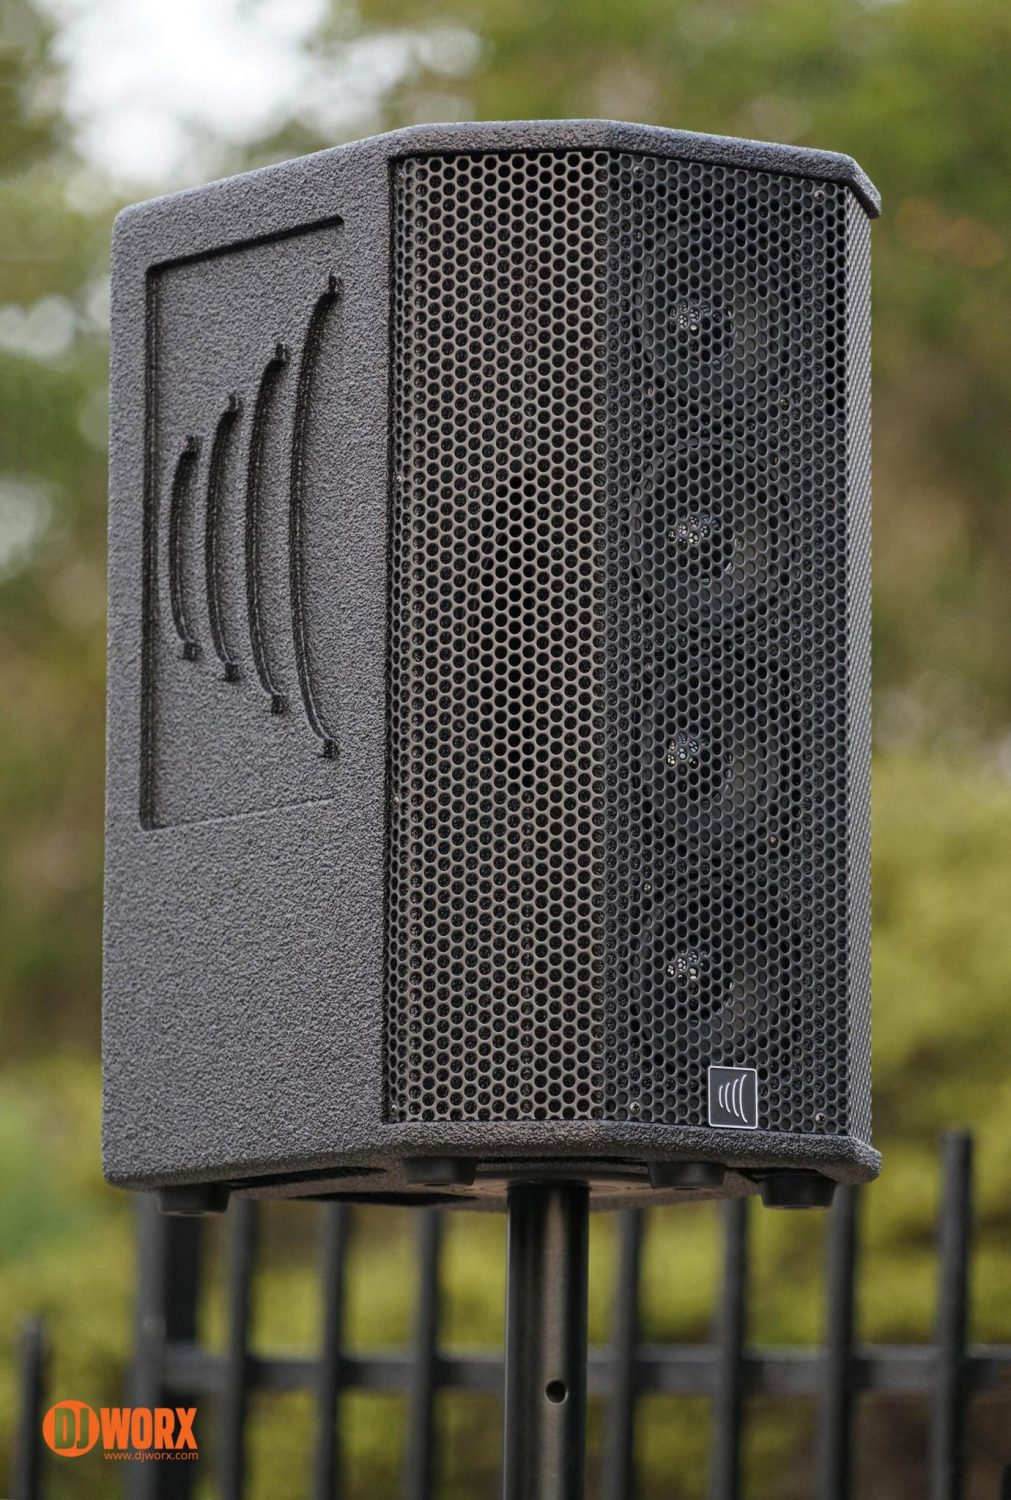 Carvin S600 series PA review (8)